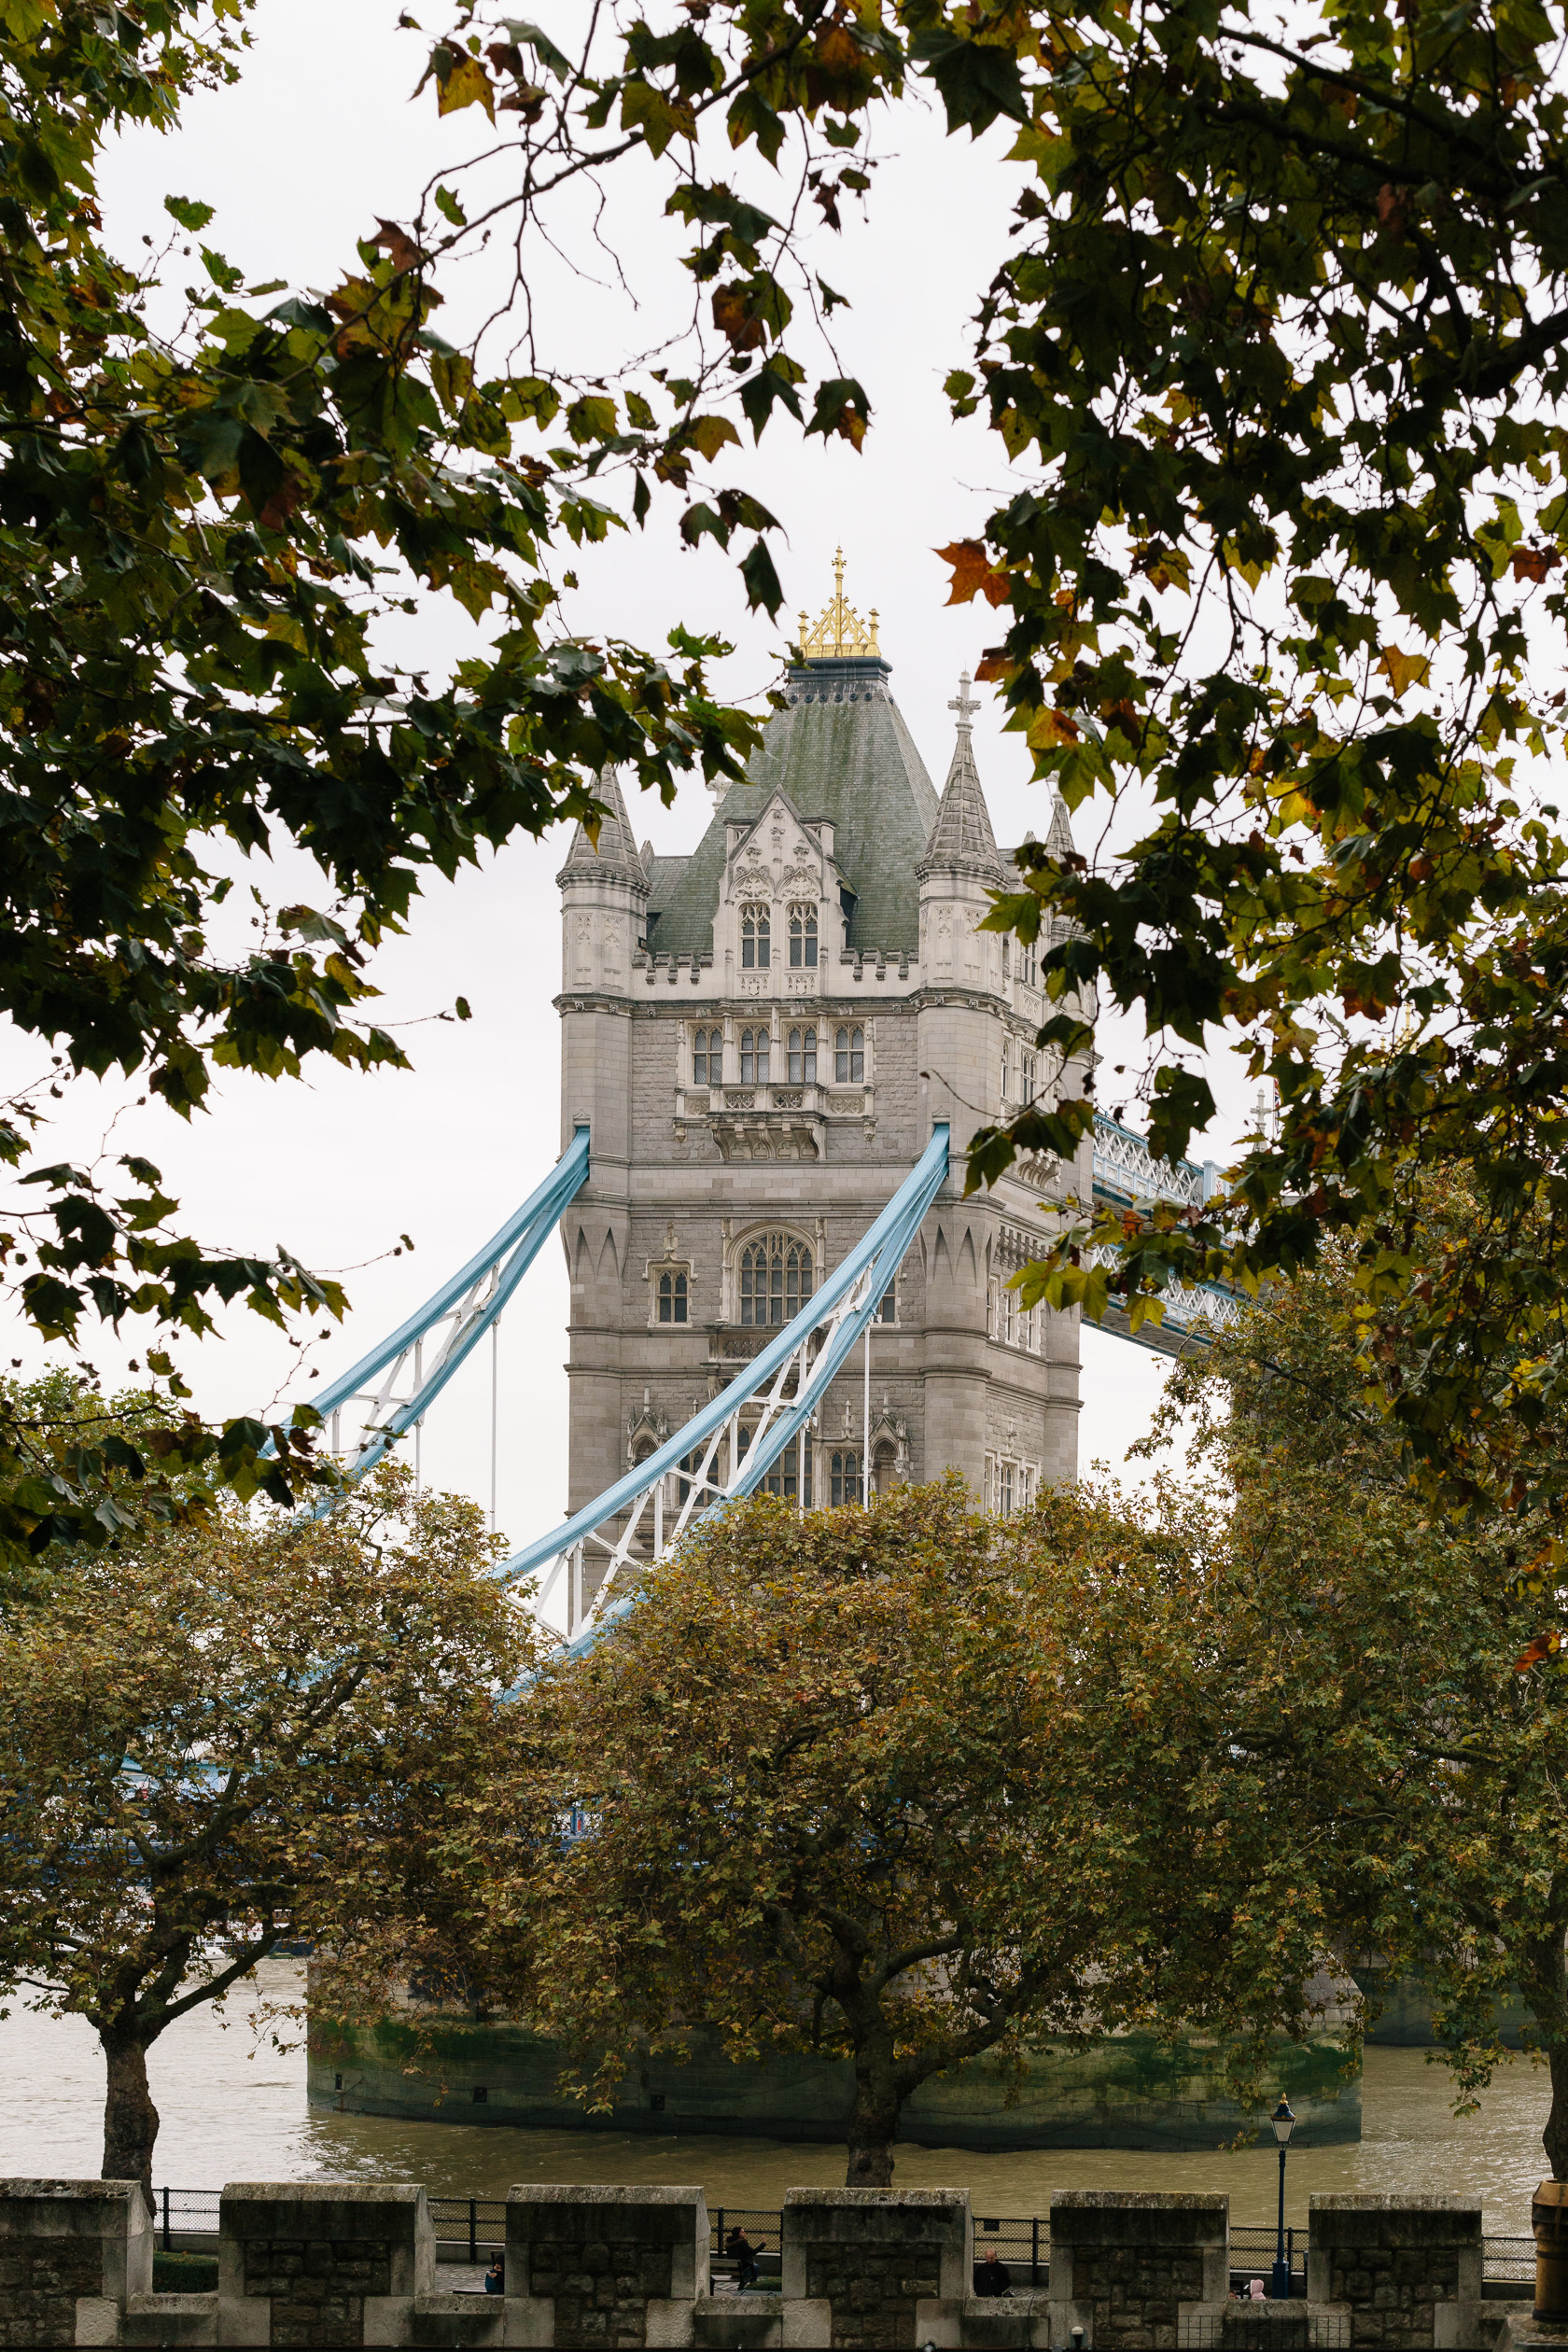 the-tower-bridge-london-4356